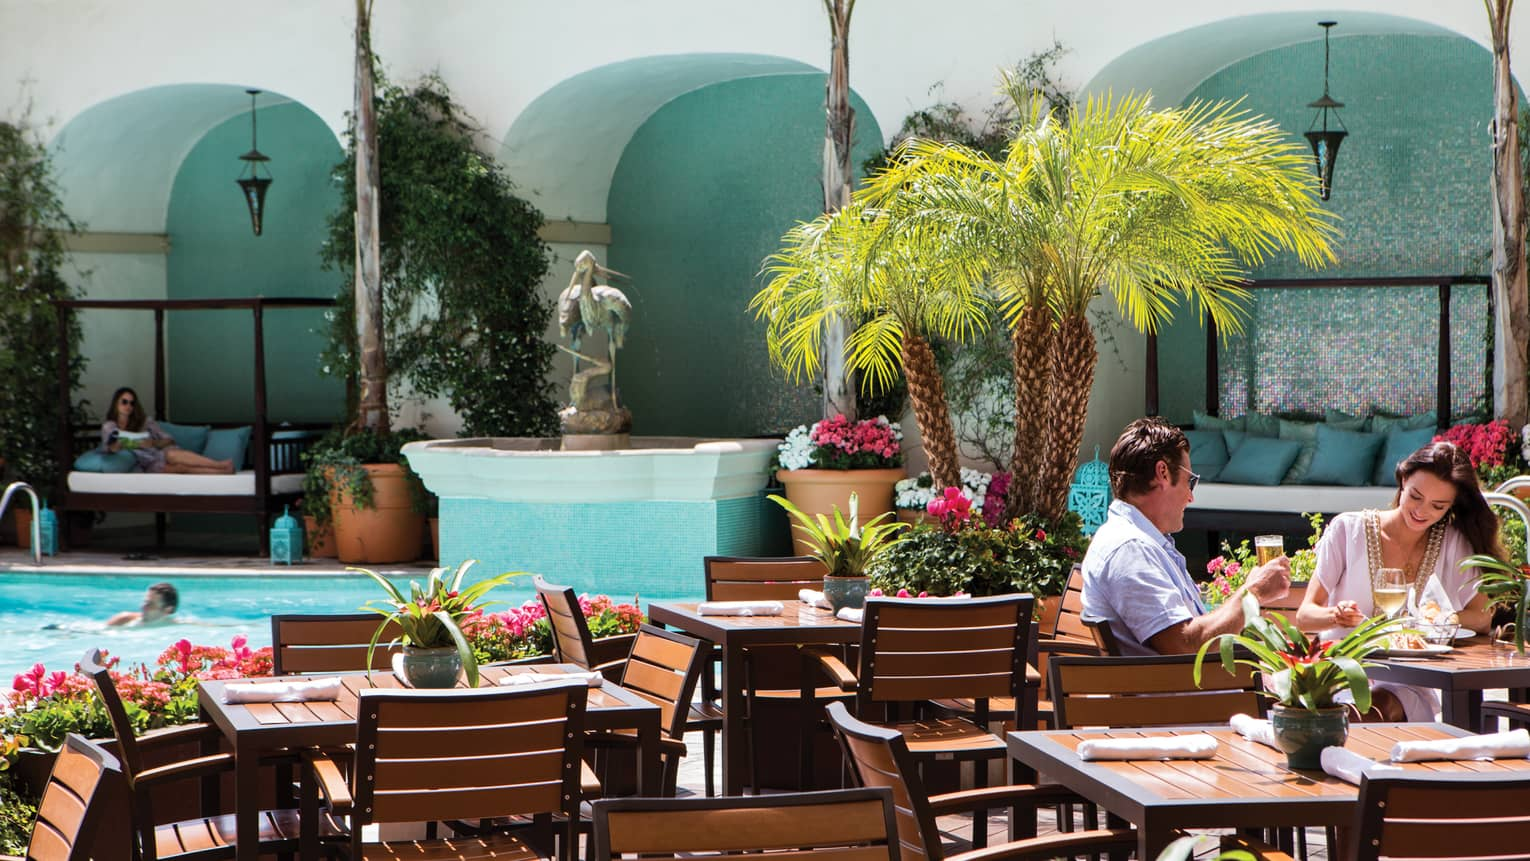 Couple dines on sunny patio by palms, tables, man swimming in outdoor swimming pool